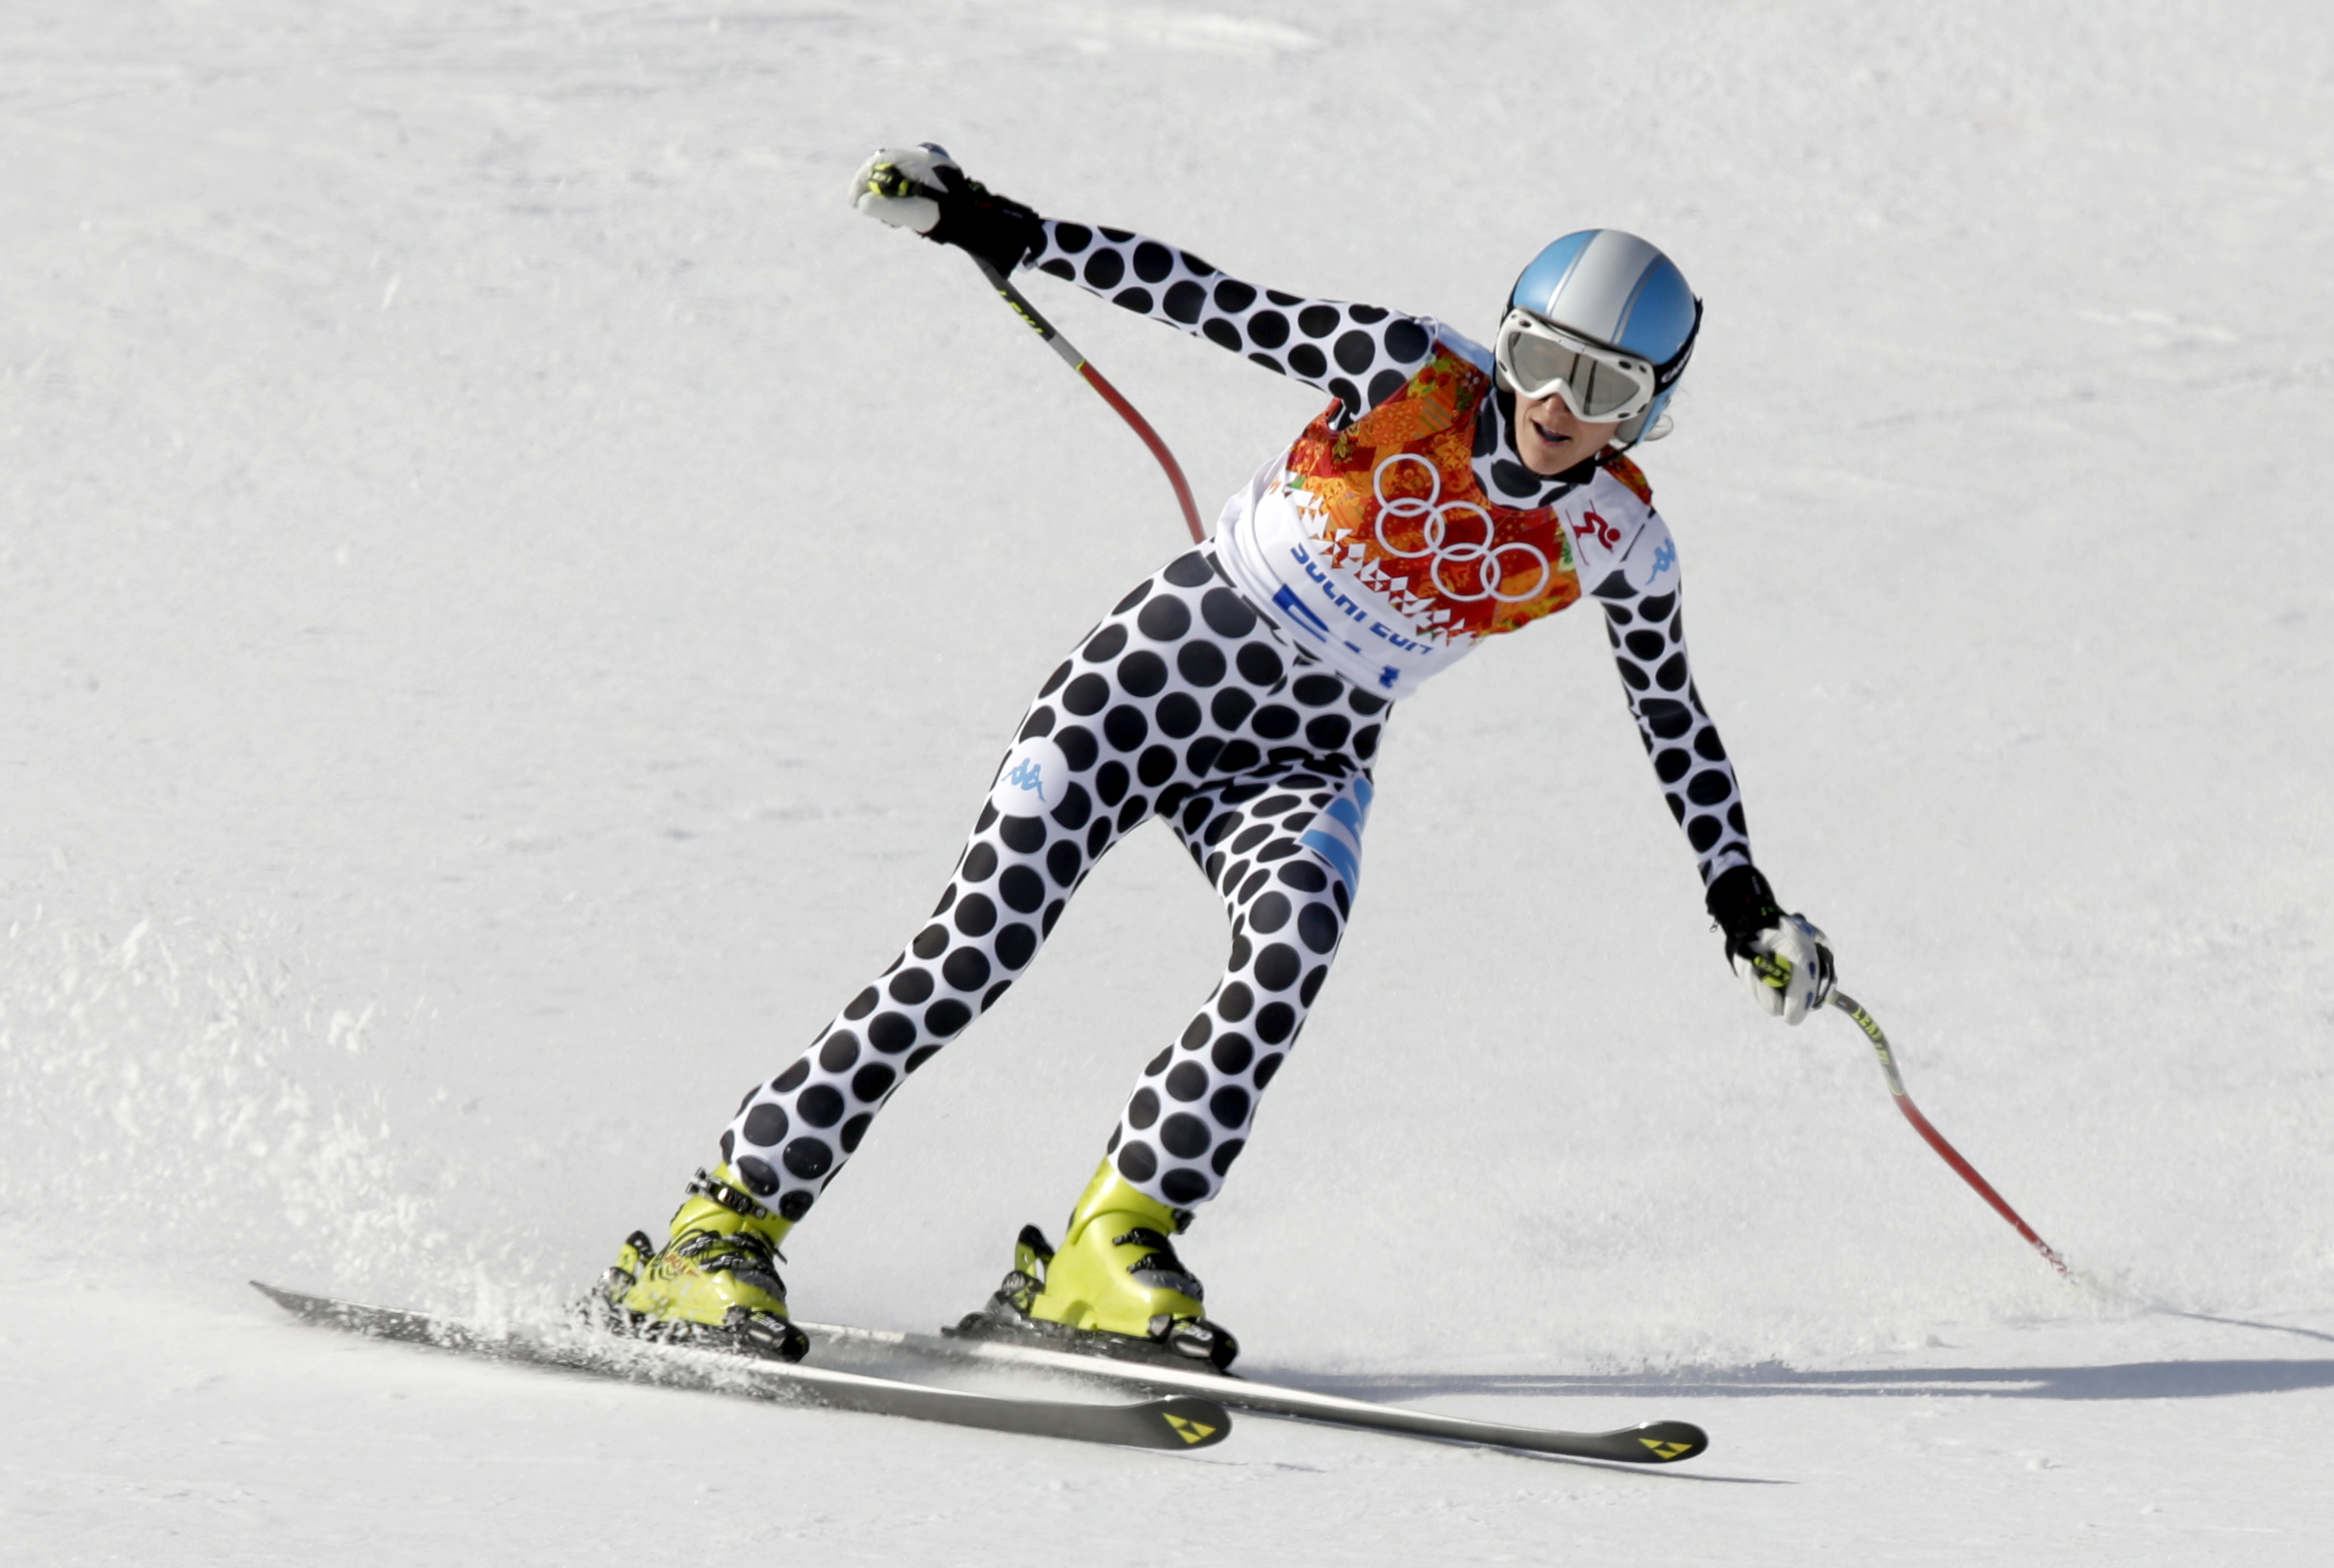 Argentina's Macarena Simari Birkner comes to a halt at the end of the downhill portion of the women's supercombined at the Sochi 2014 Winter Olympics, Monday, Feb. 10, 2014, in Krasnaya Polyana, Russia. (AP Photo/Gero Breloer)